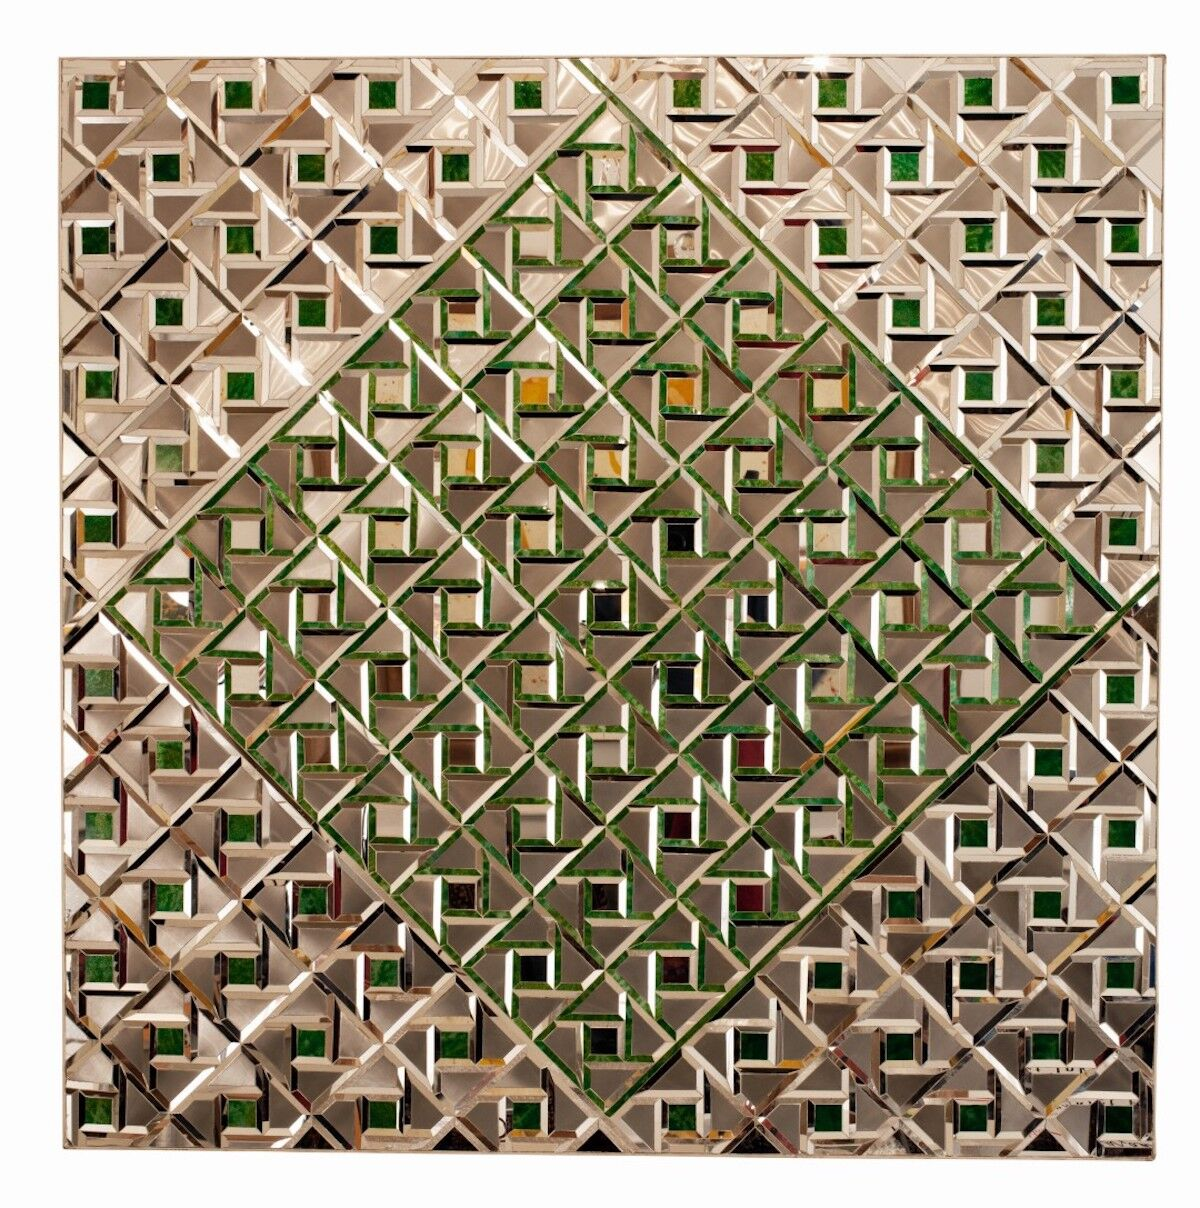 Monir Farmanfarmaian, Geometry of Hope, 1975